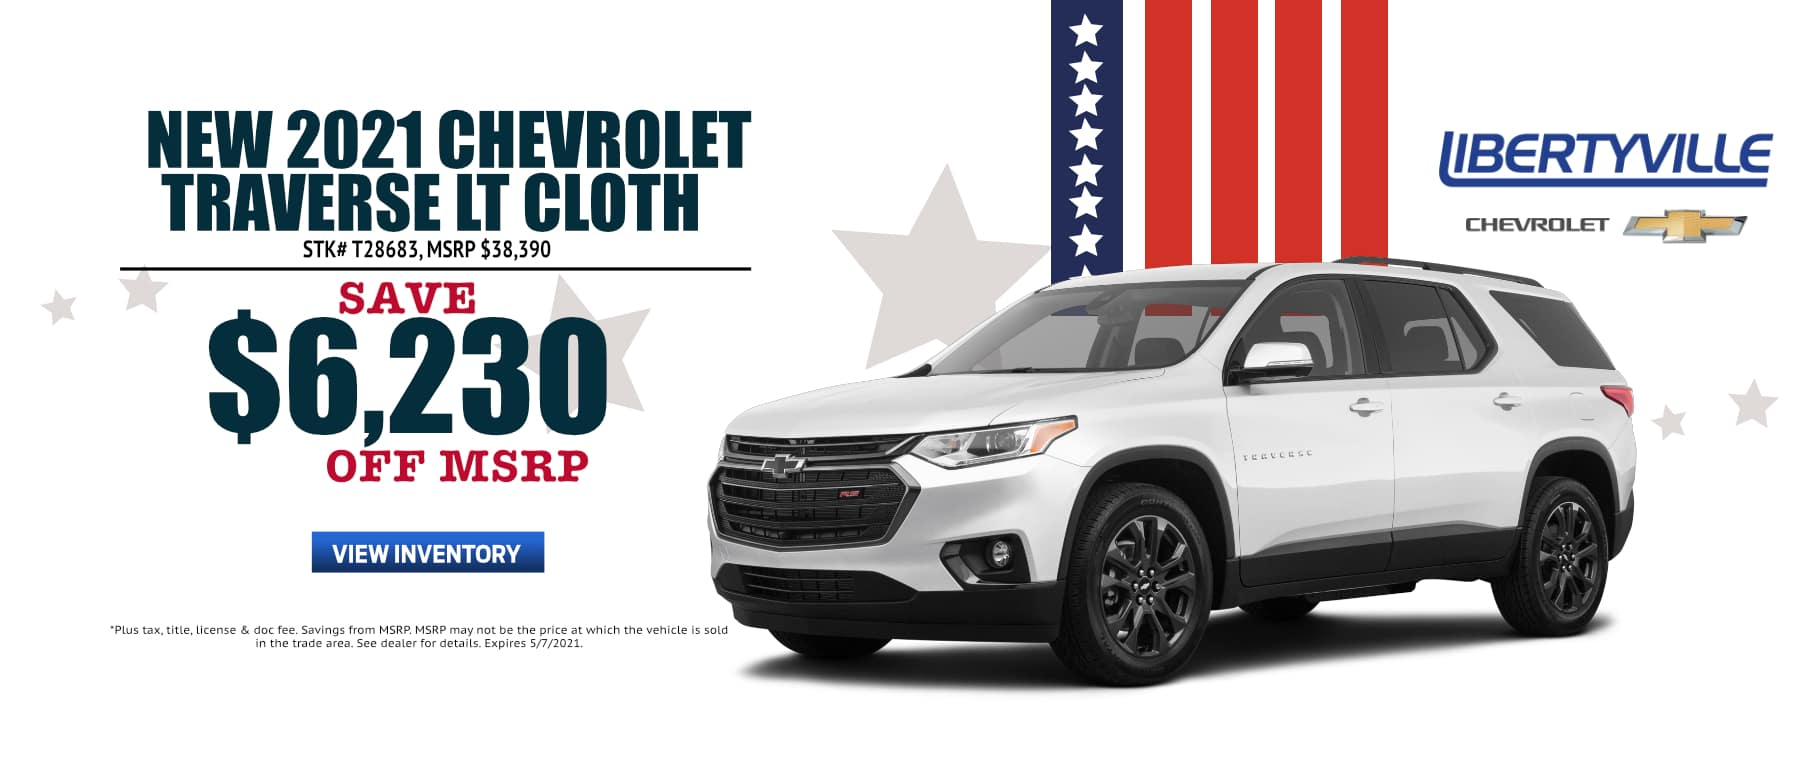 April_2021_Traverse_Libertyville_Chevrolet_